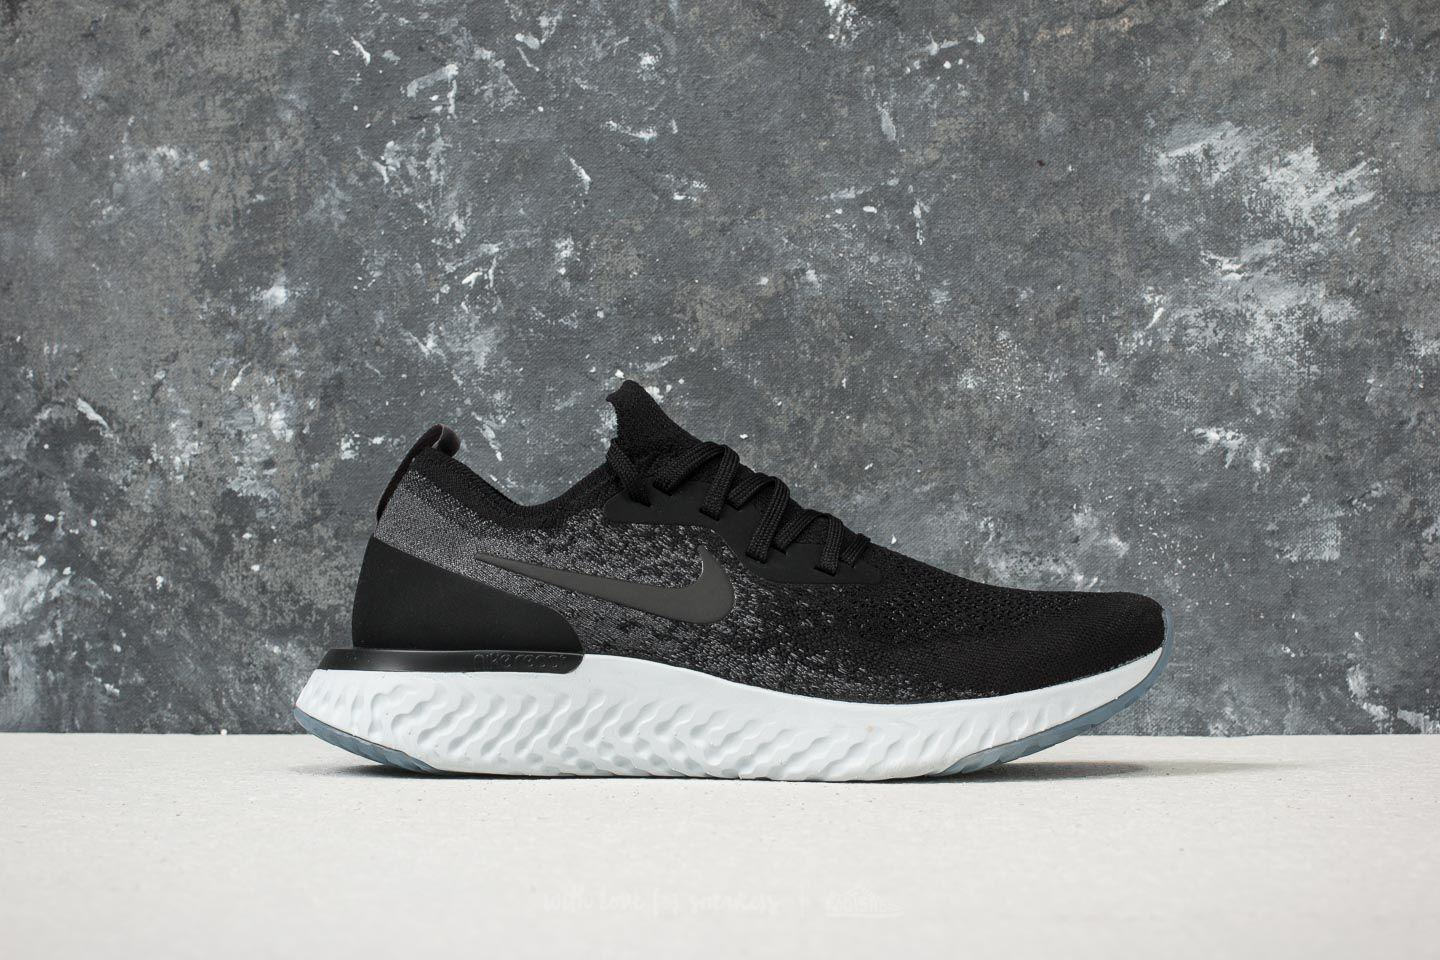 db98a9f4f407 ... cheapest nike epic react flyknit black black dark grey for men lyst.  view fullscreen 8326b